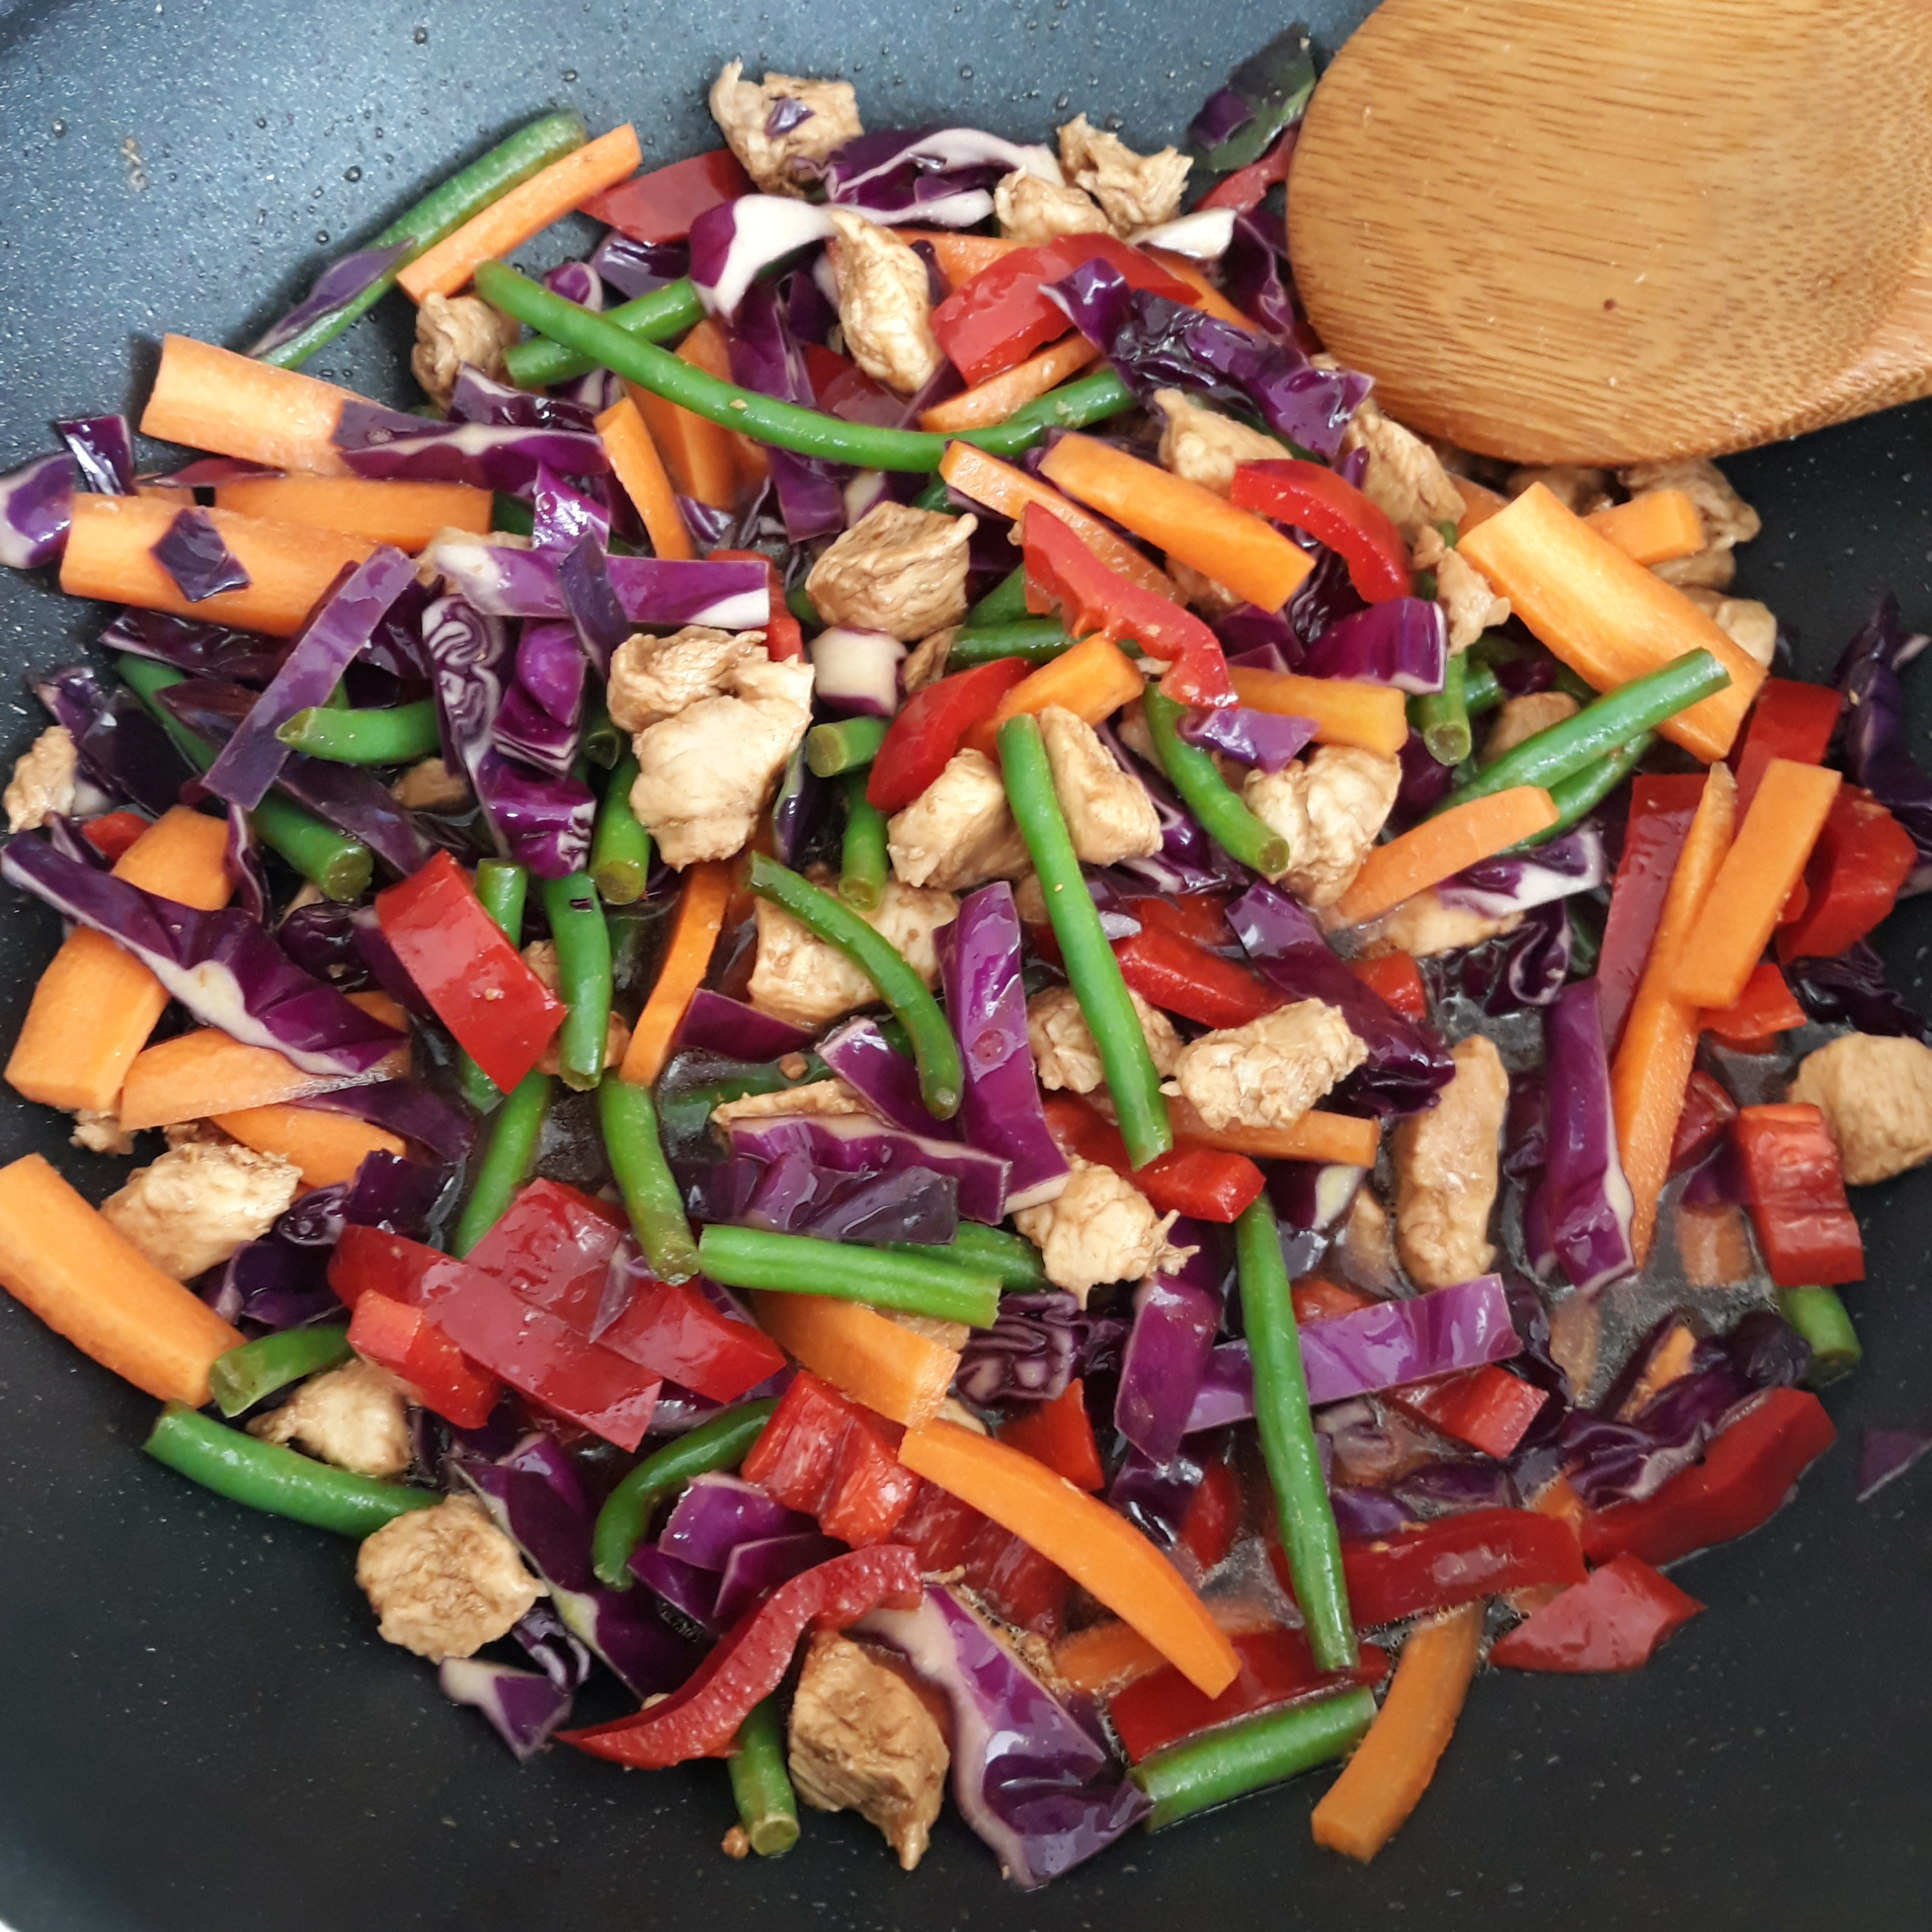 Stir-Fried Vegetables with Chicken or Pork Authentic foodie